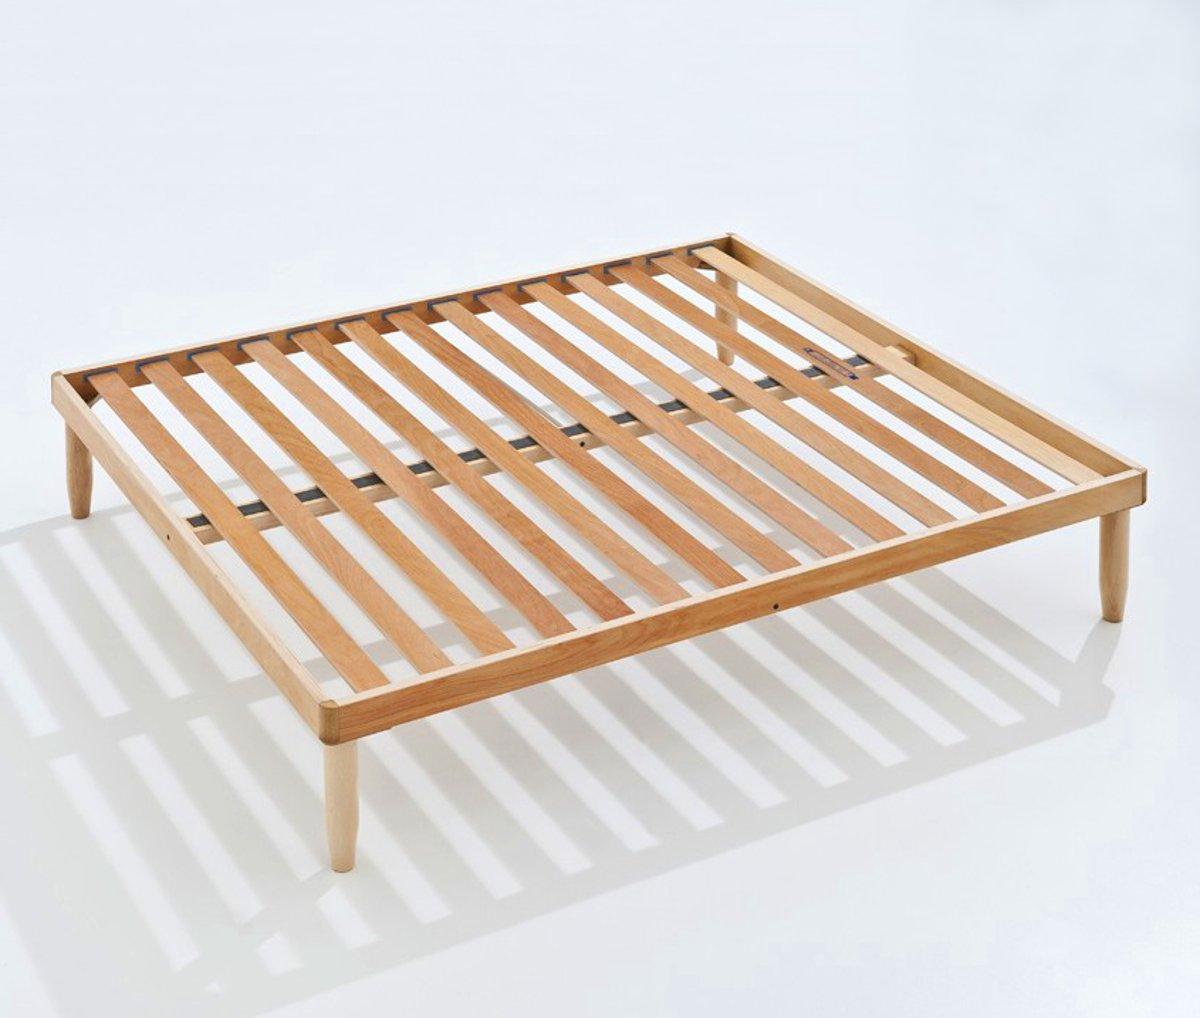 Baldiflex Double Orthopaedic Bed Frame in Beech Wood 160 x 200 cm Model Apollo